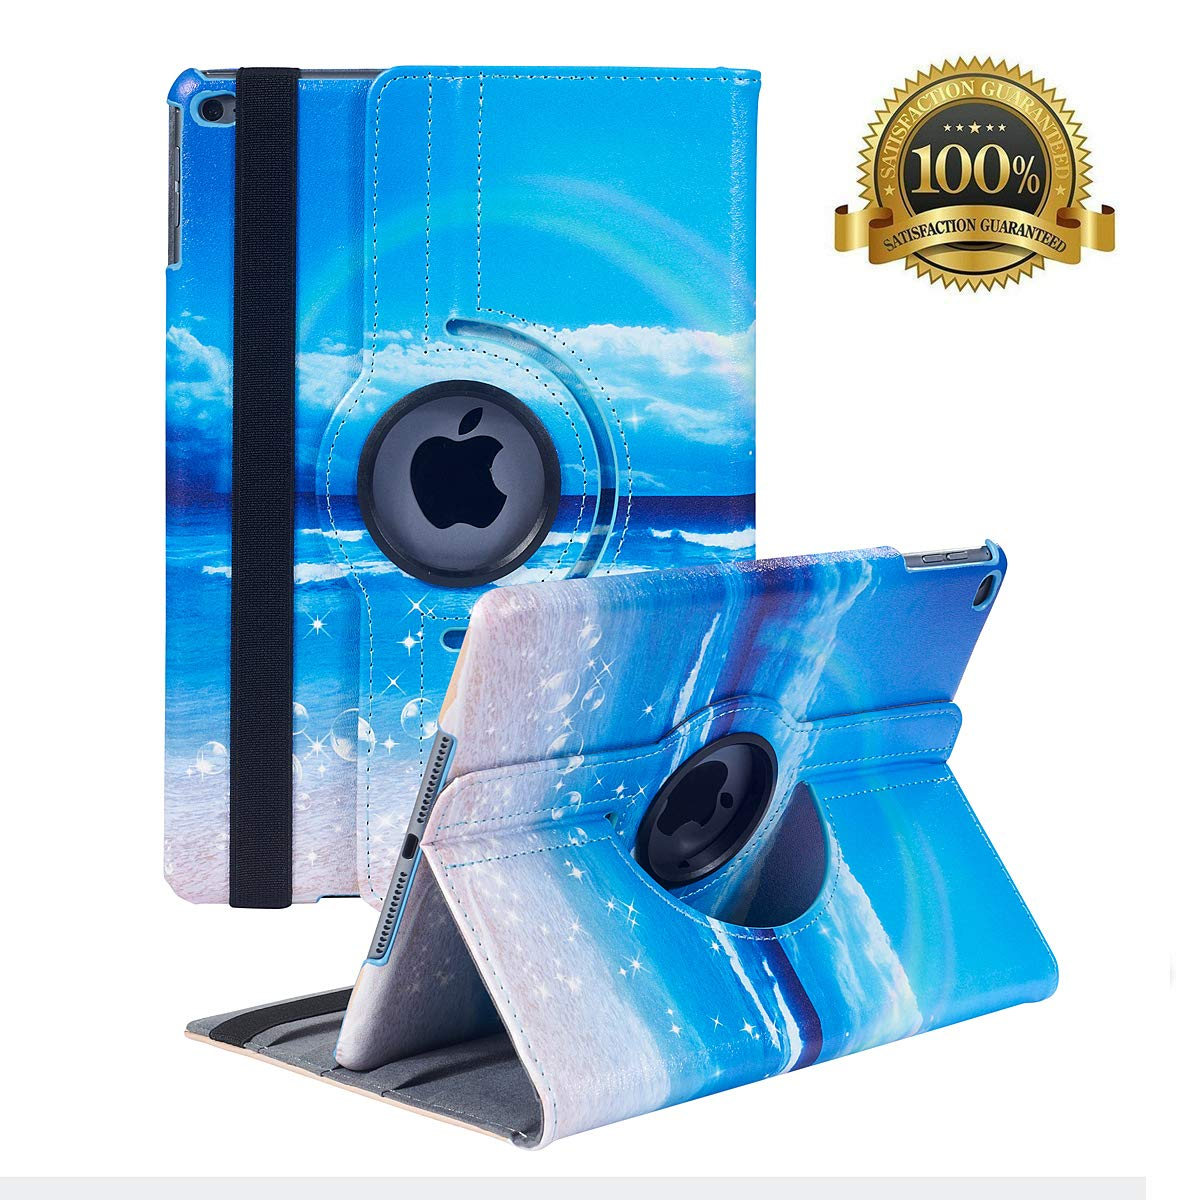 """Hsxfl New iPad 9.7 inch 2018 2017/ iPad Air Case - 360 Degree Rotating Stand Smart Cover Case with Auto Sleep Wake for Apple iPad 9.7"""" (6th Gen, 5th Gen)/iPad Air(Seagulls)"""